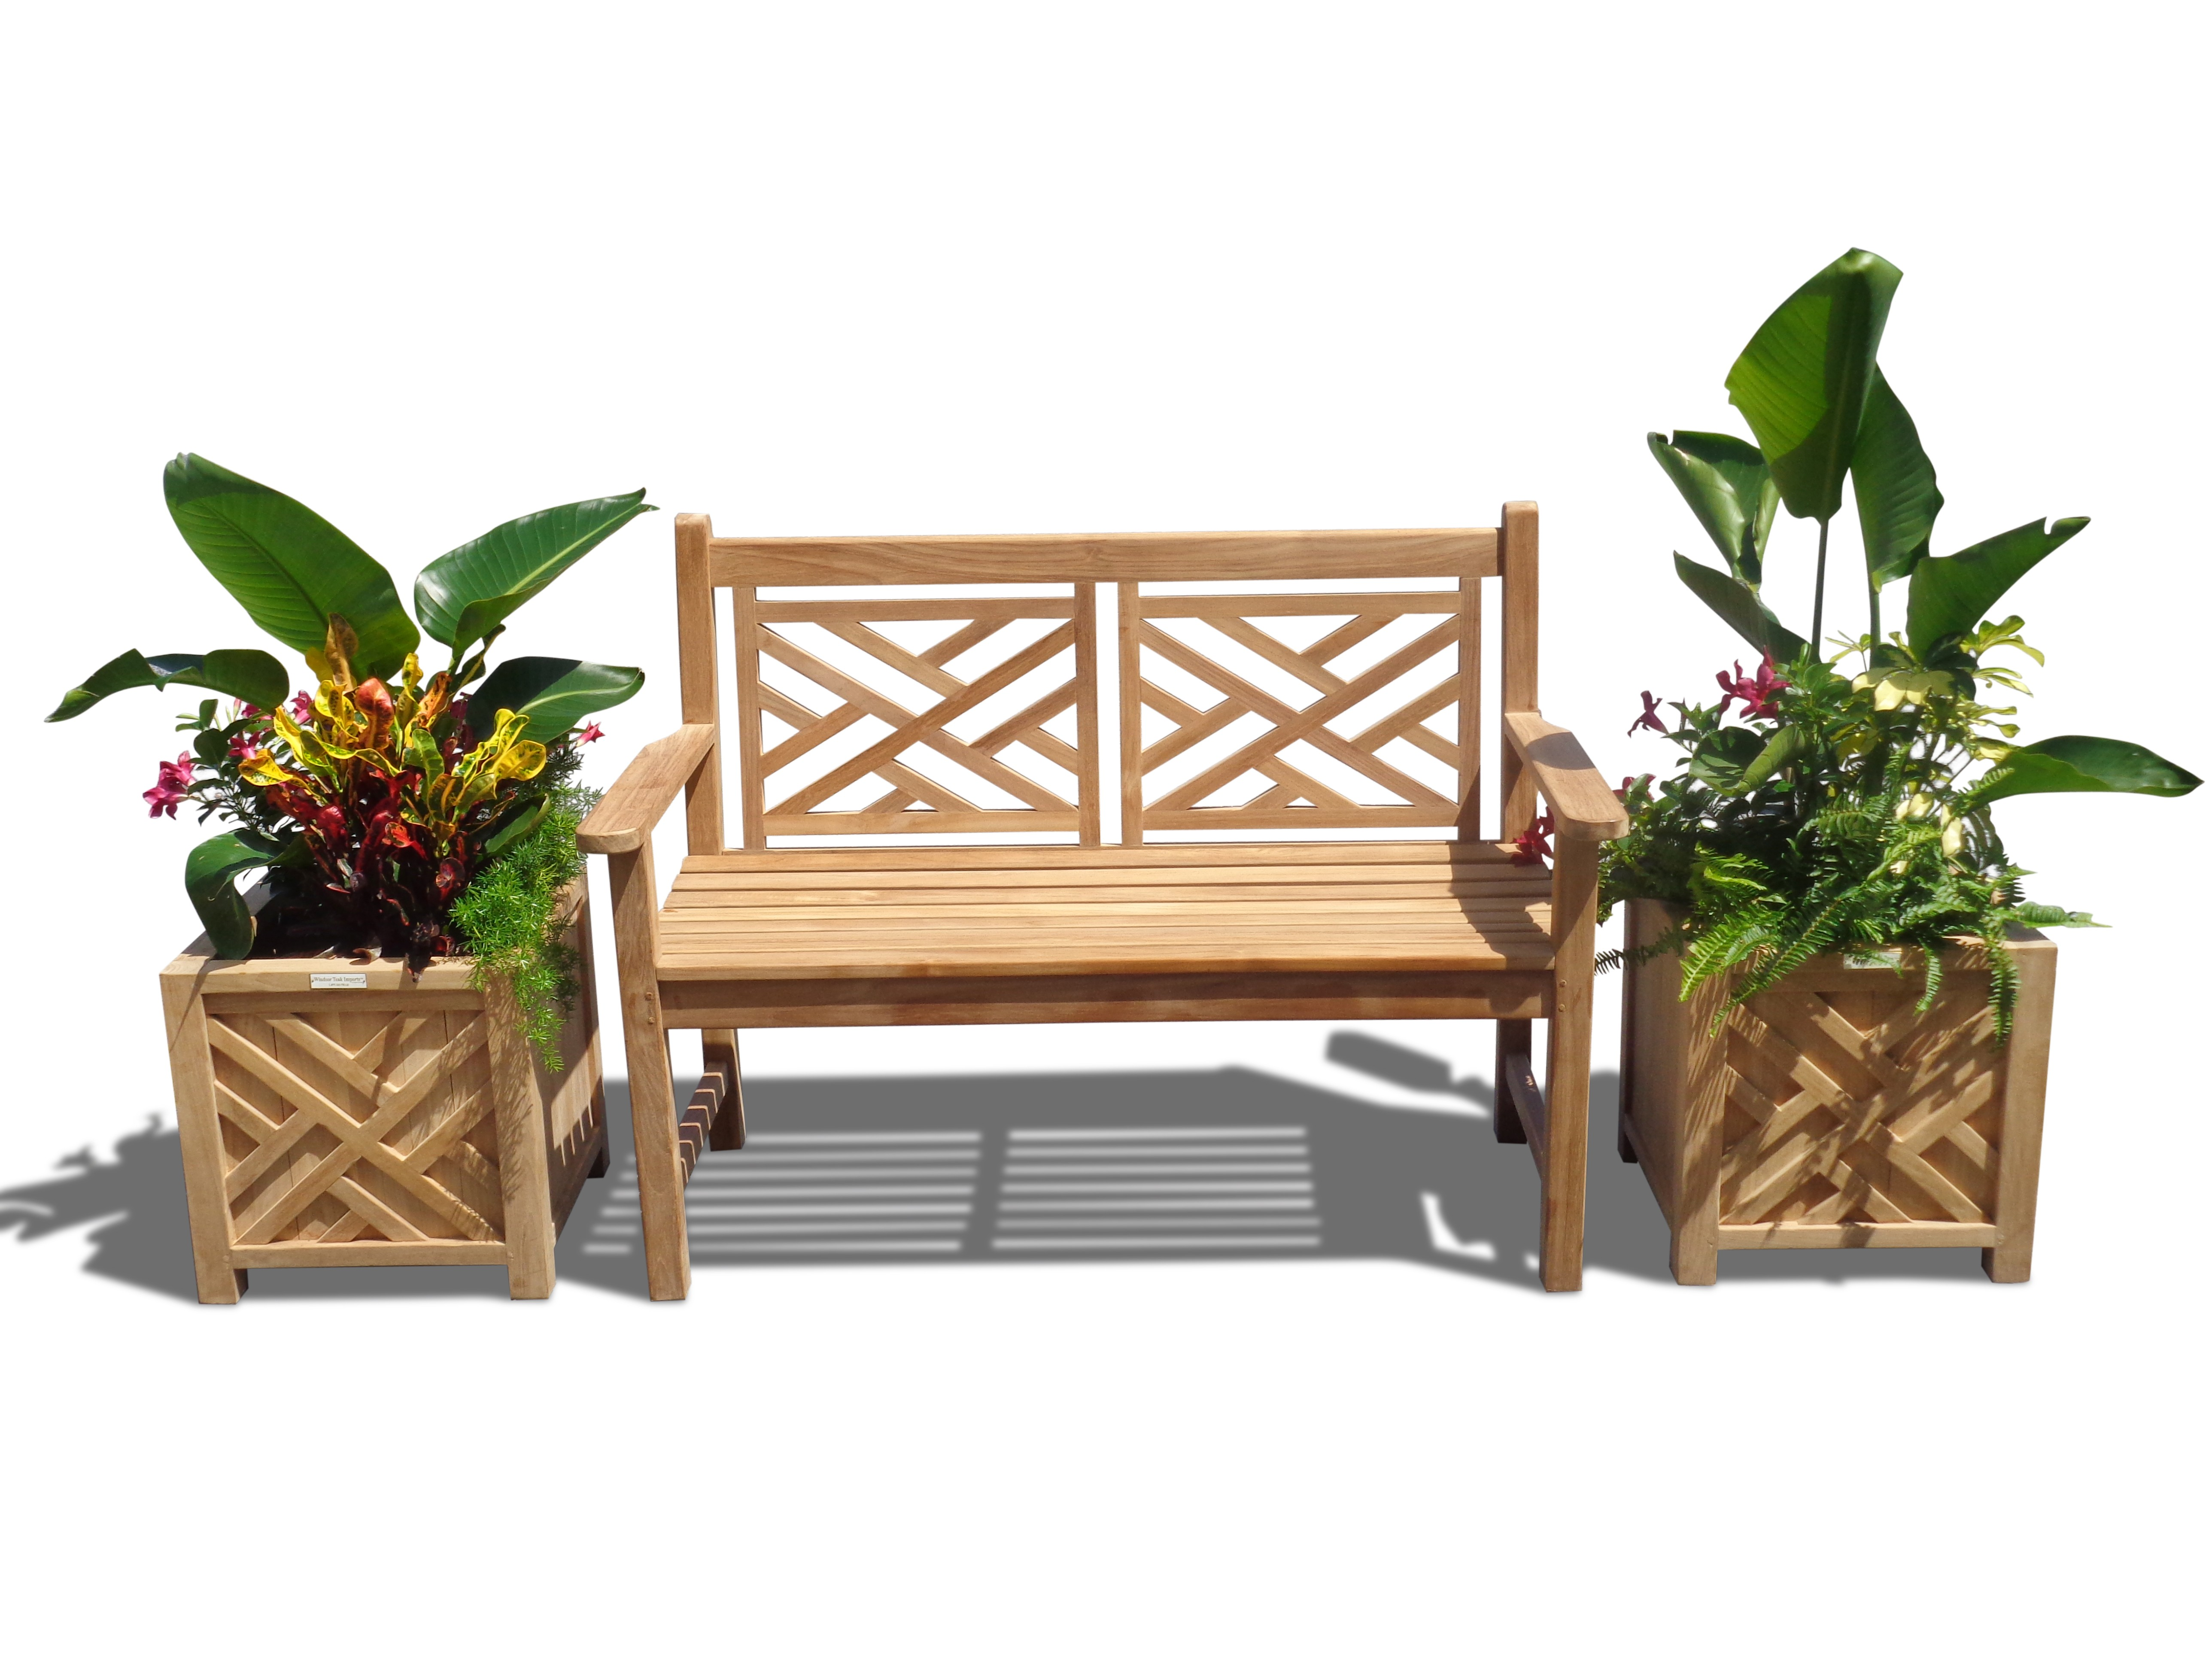 "Chippendale 3 Pc Teak Collection w/ One 48"" 2 Seater Bench and two 18"" Planters"